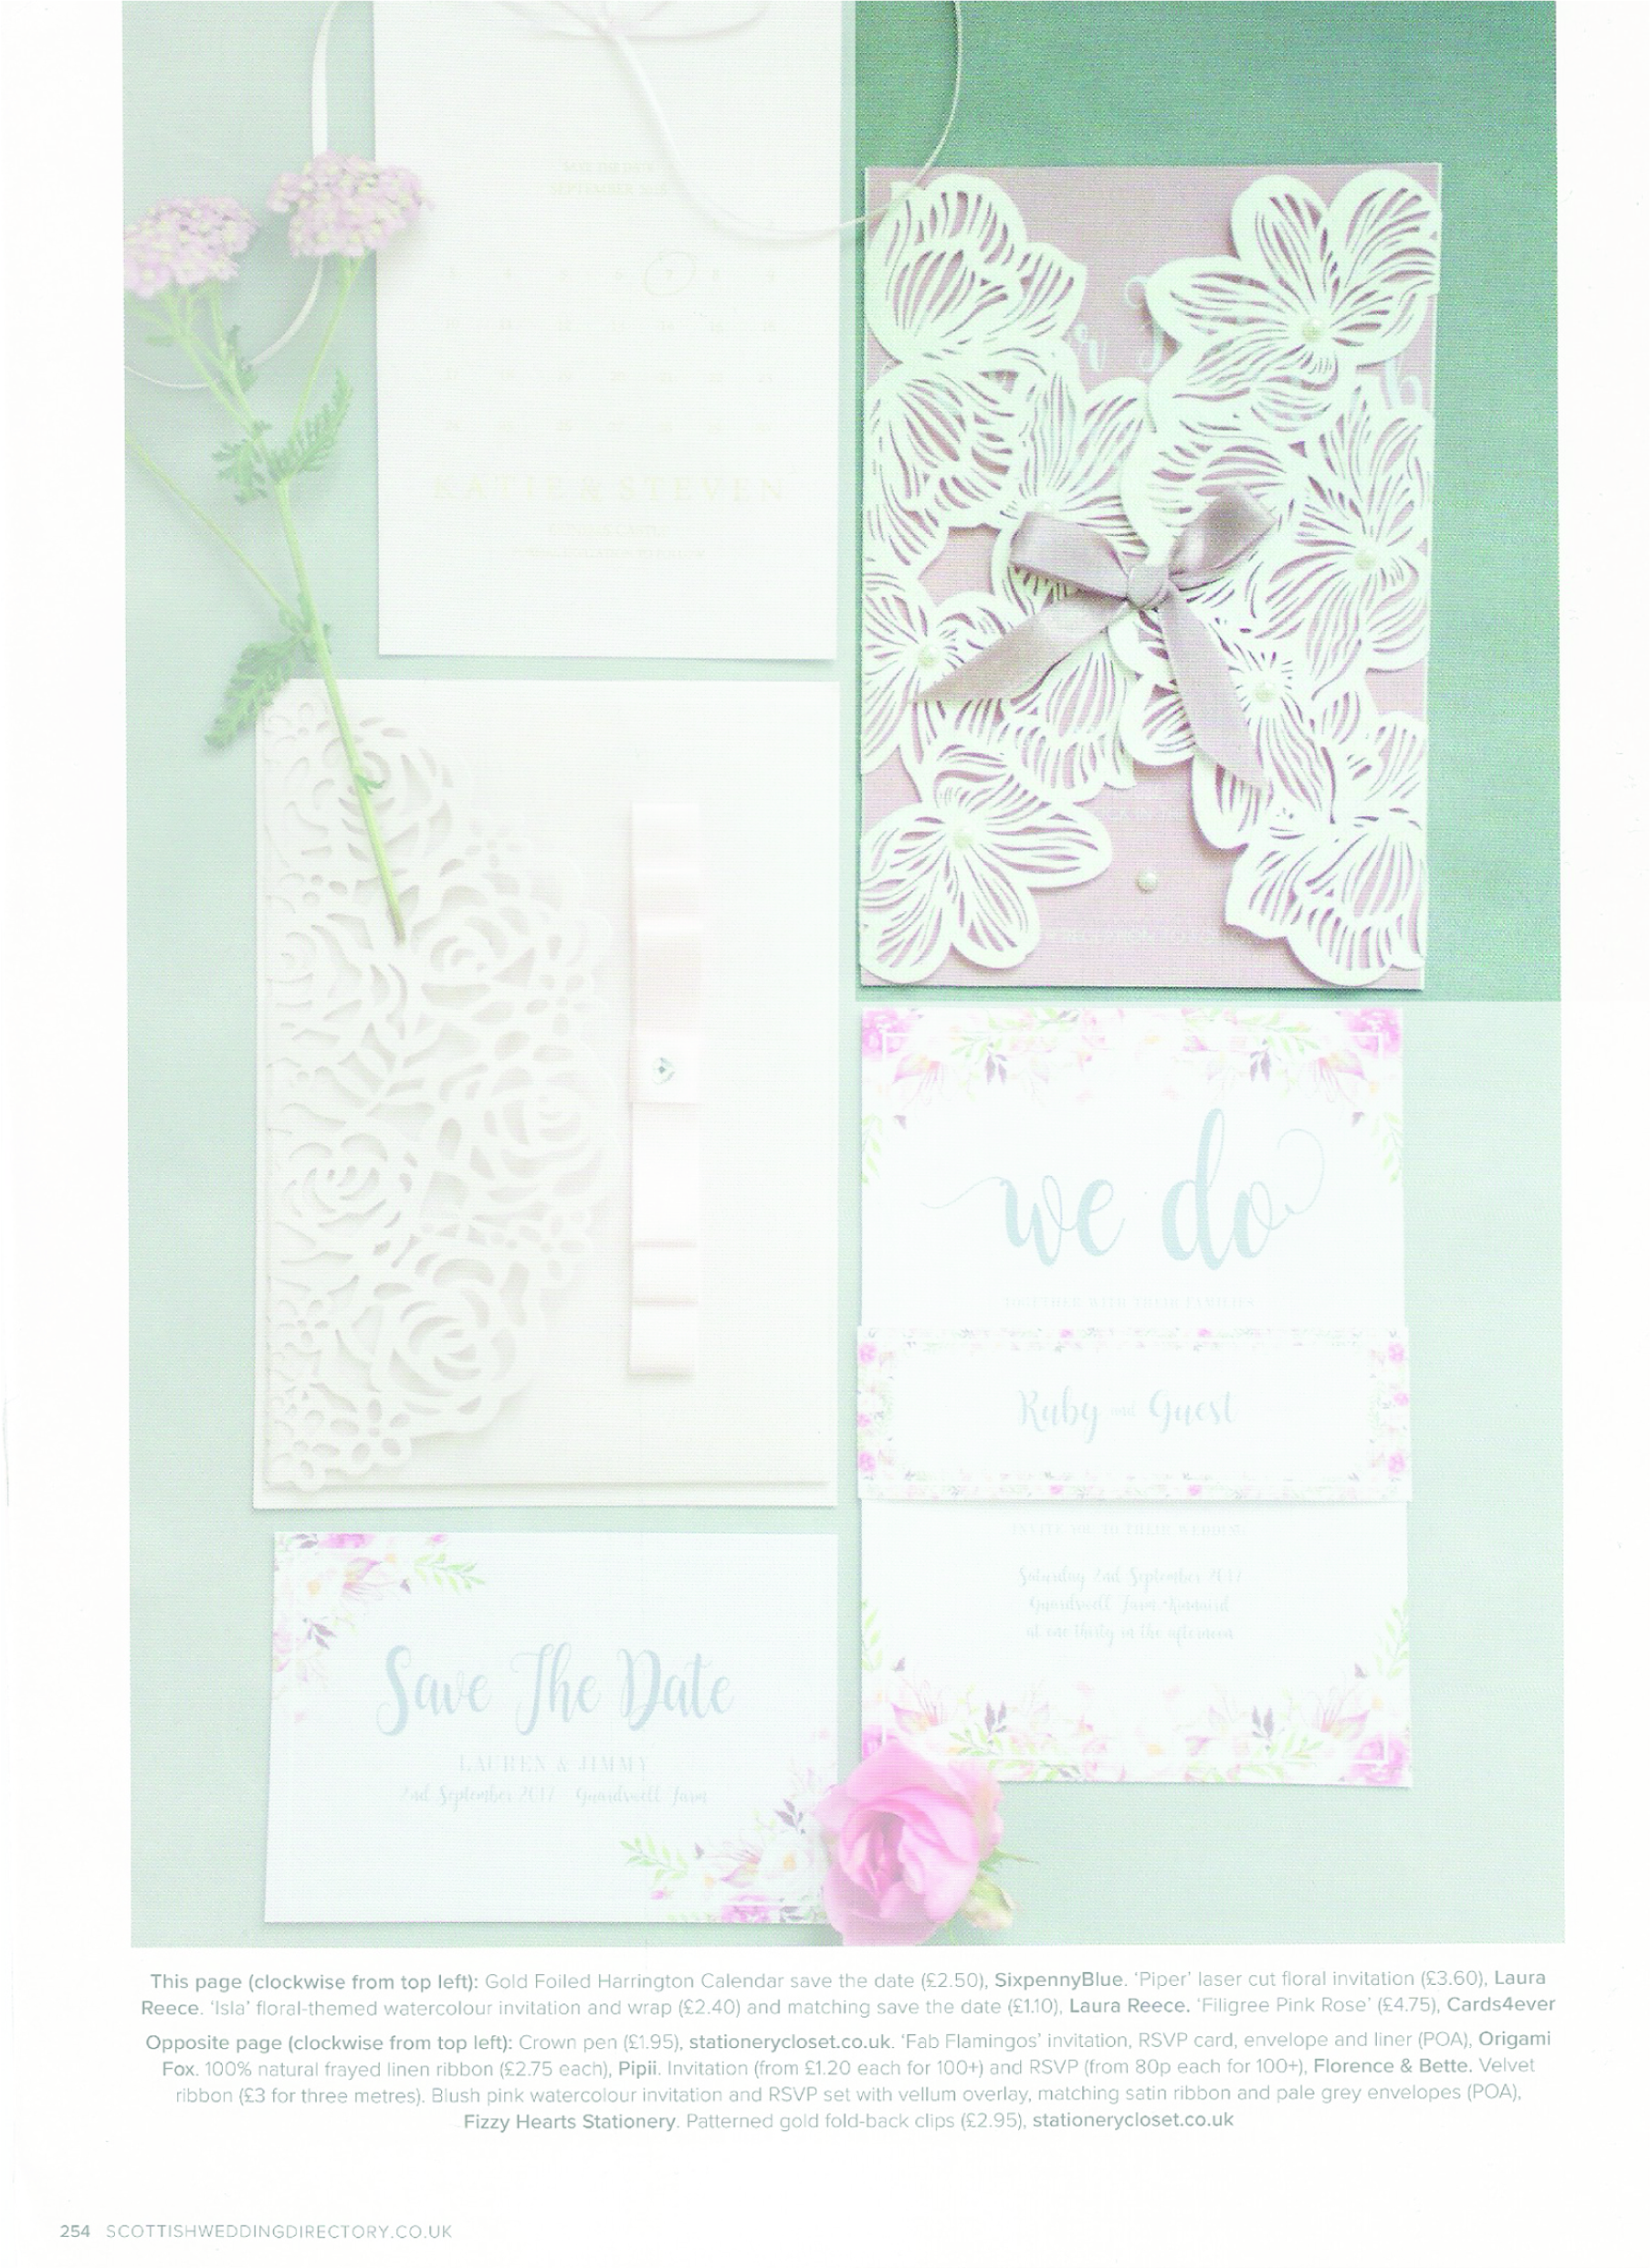 Scottish Wedding Directory - Laser cut wedding stationery is so loved by our couples! This delicate piece was featured in the magazine for the ' A special delivery' feature.Can be found in autumn 17' issue, page 254.